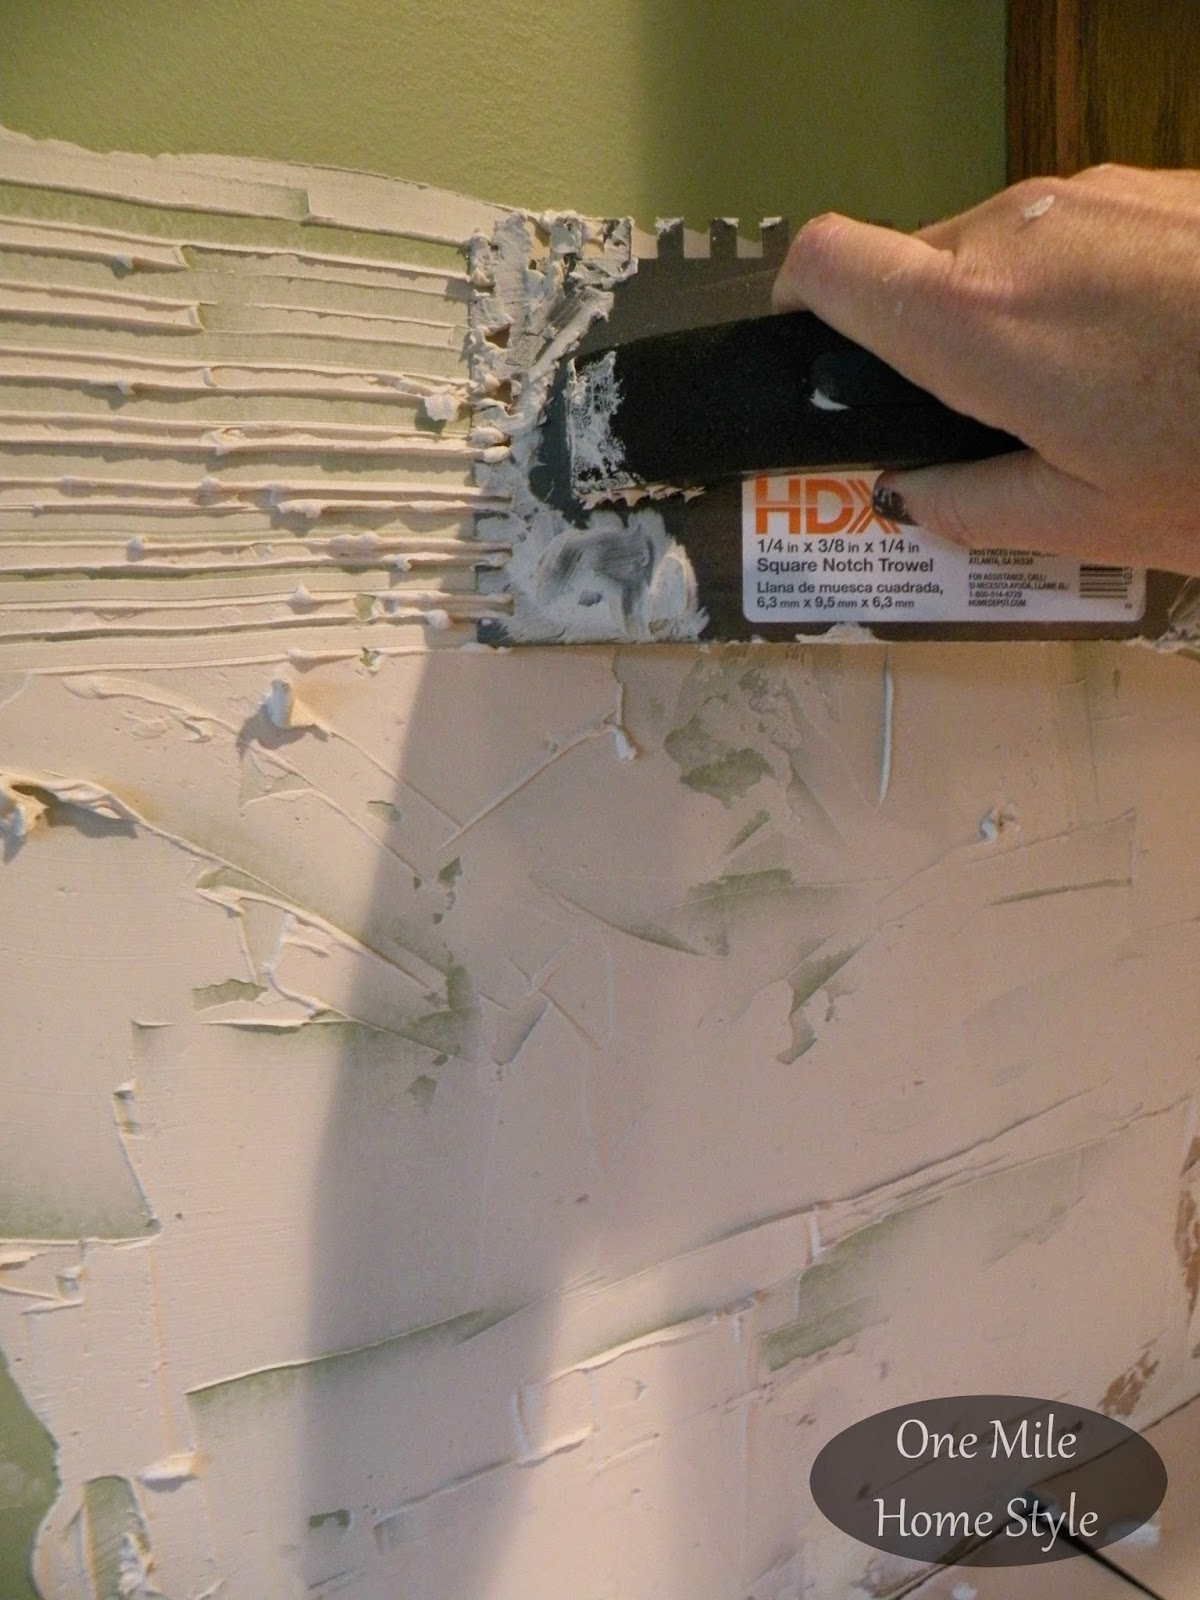 Applying tile adhesive to the walls for a new backsplash